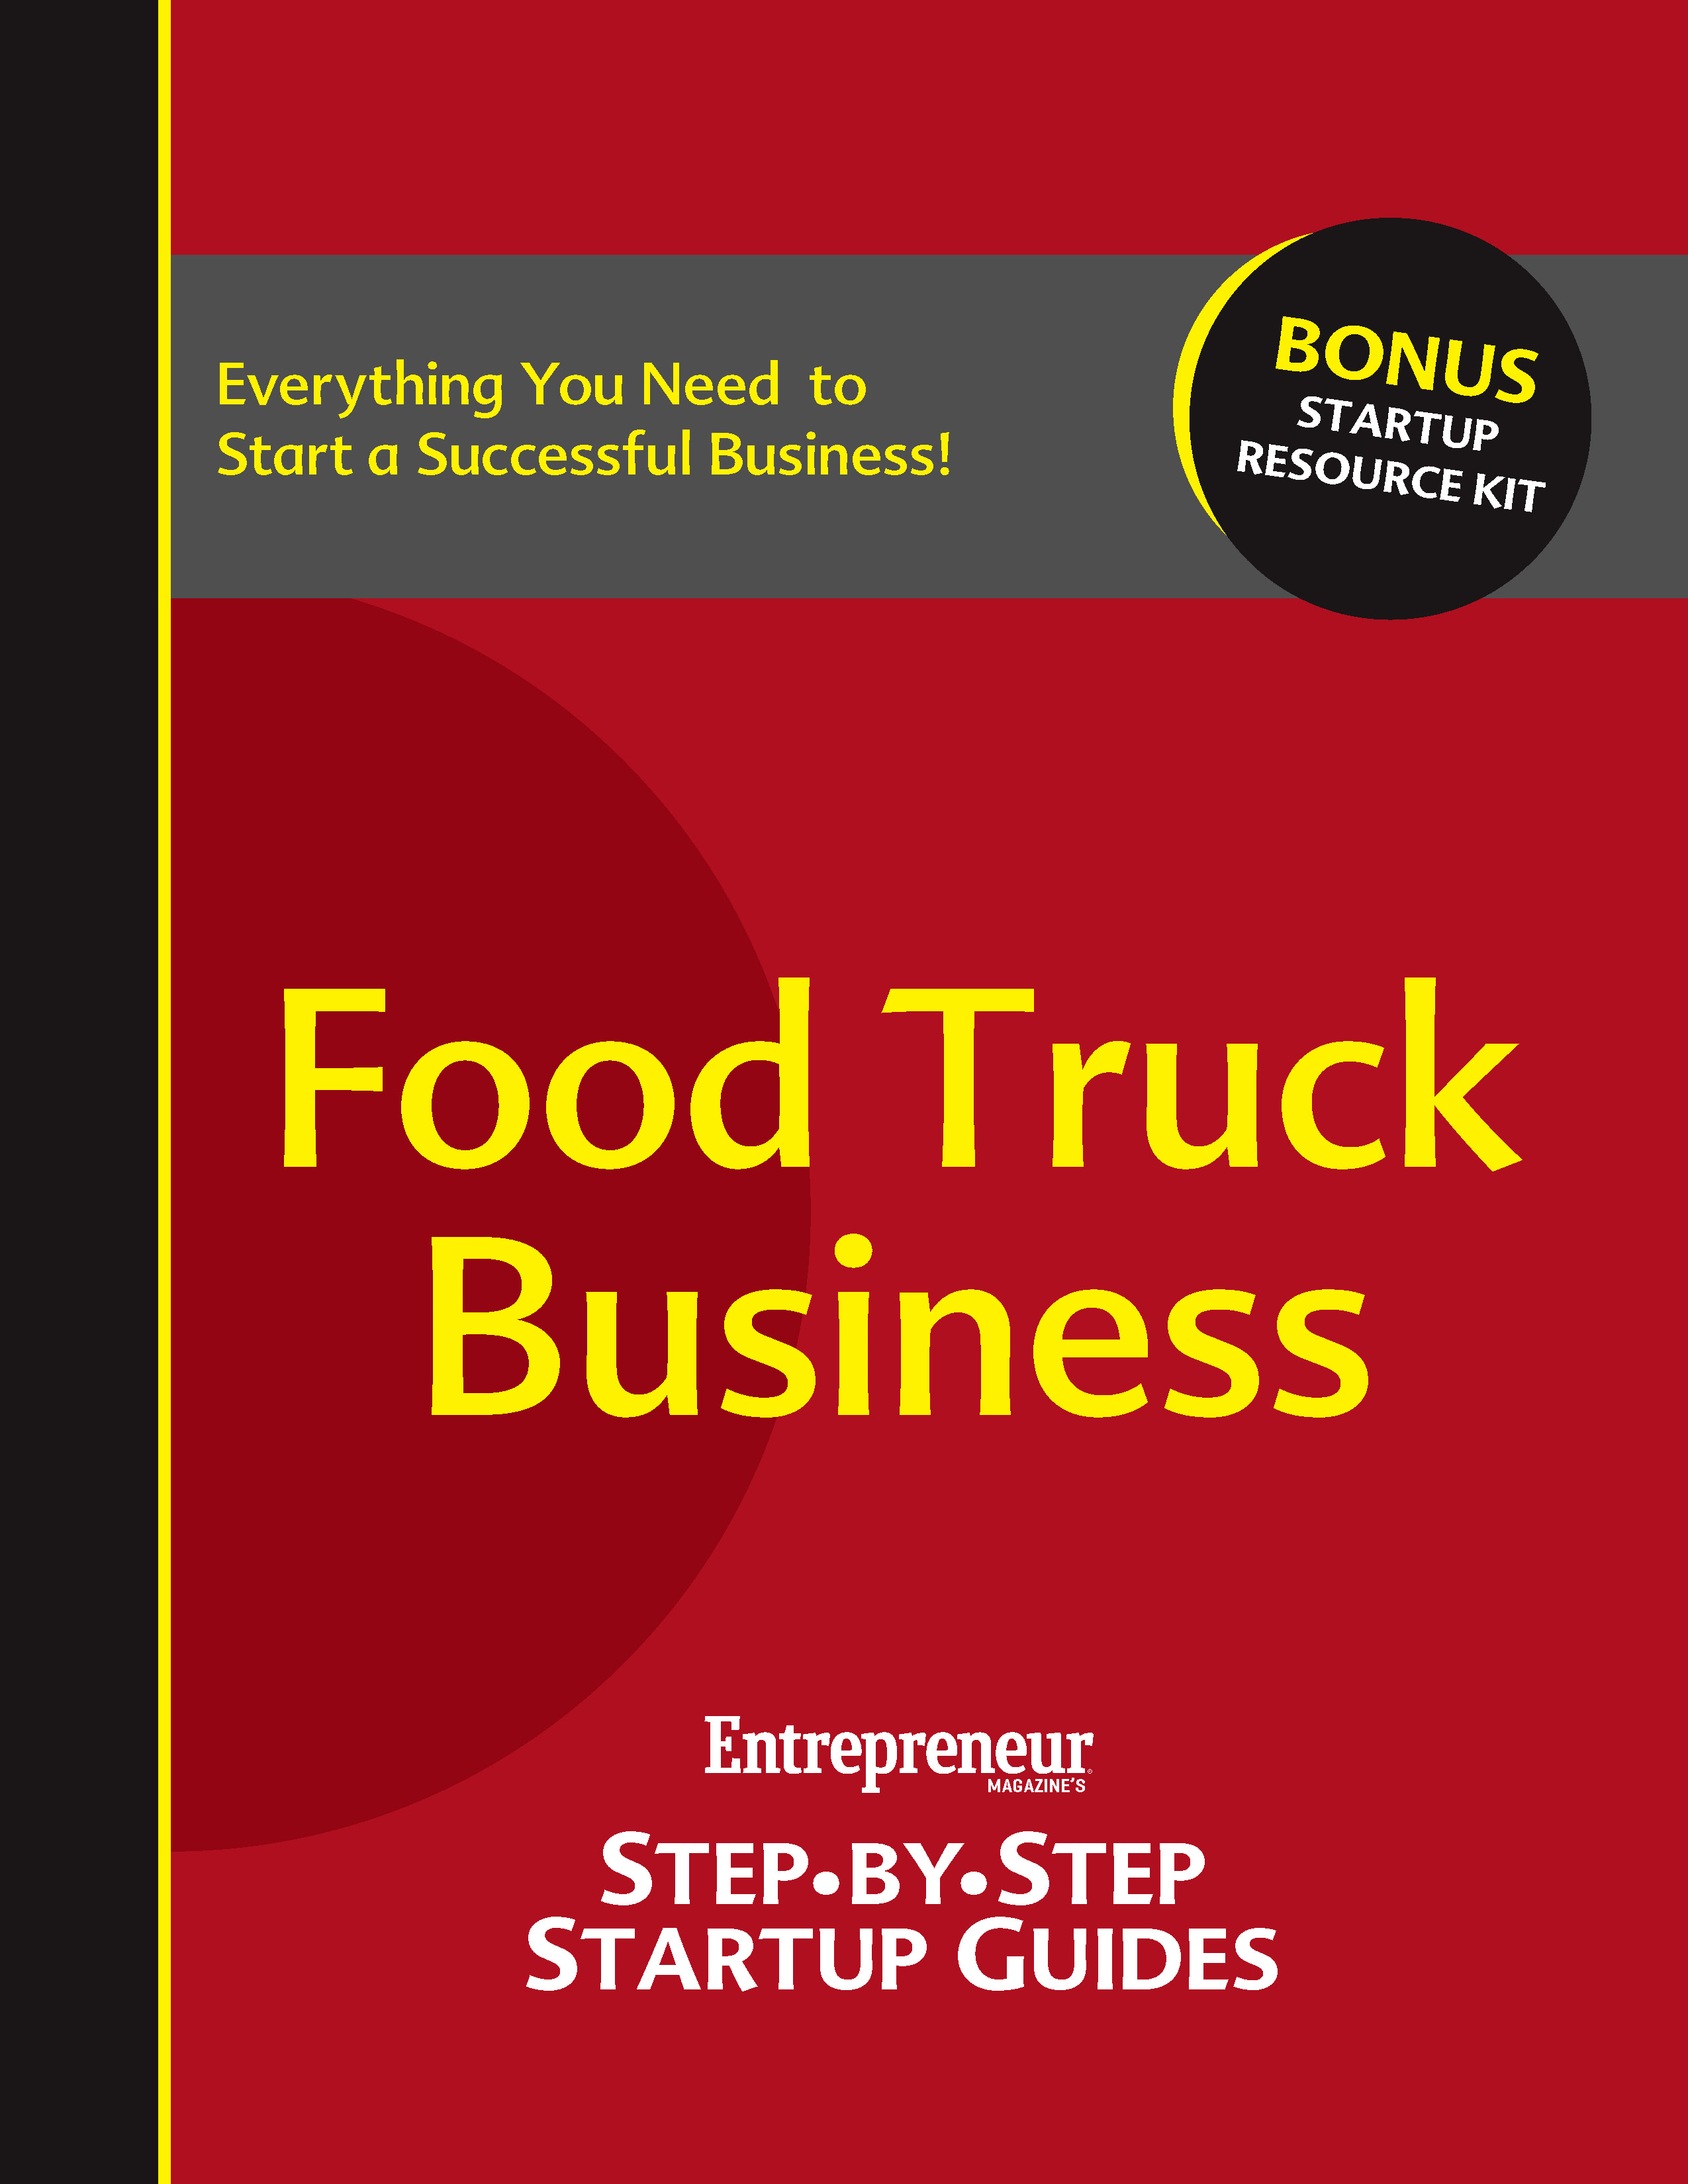 Food Truck Business By: Entrepreneur magazine